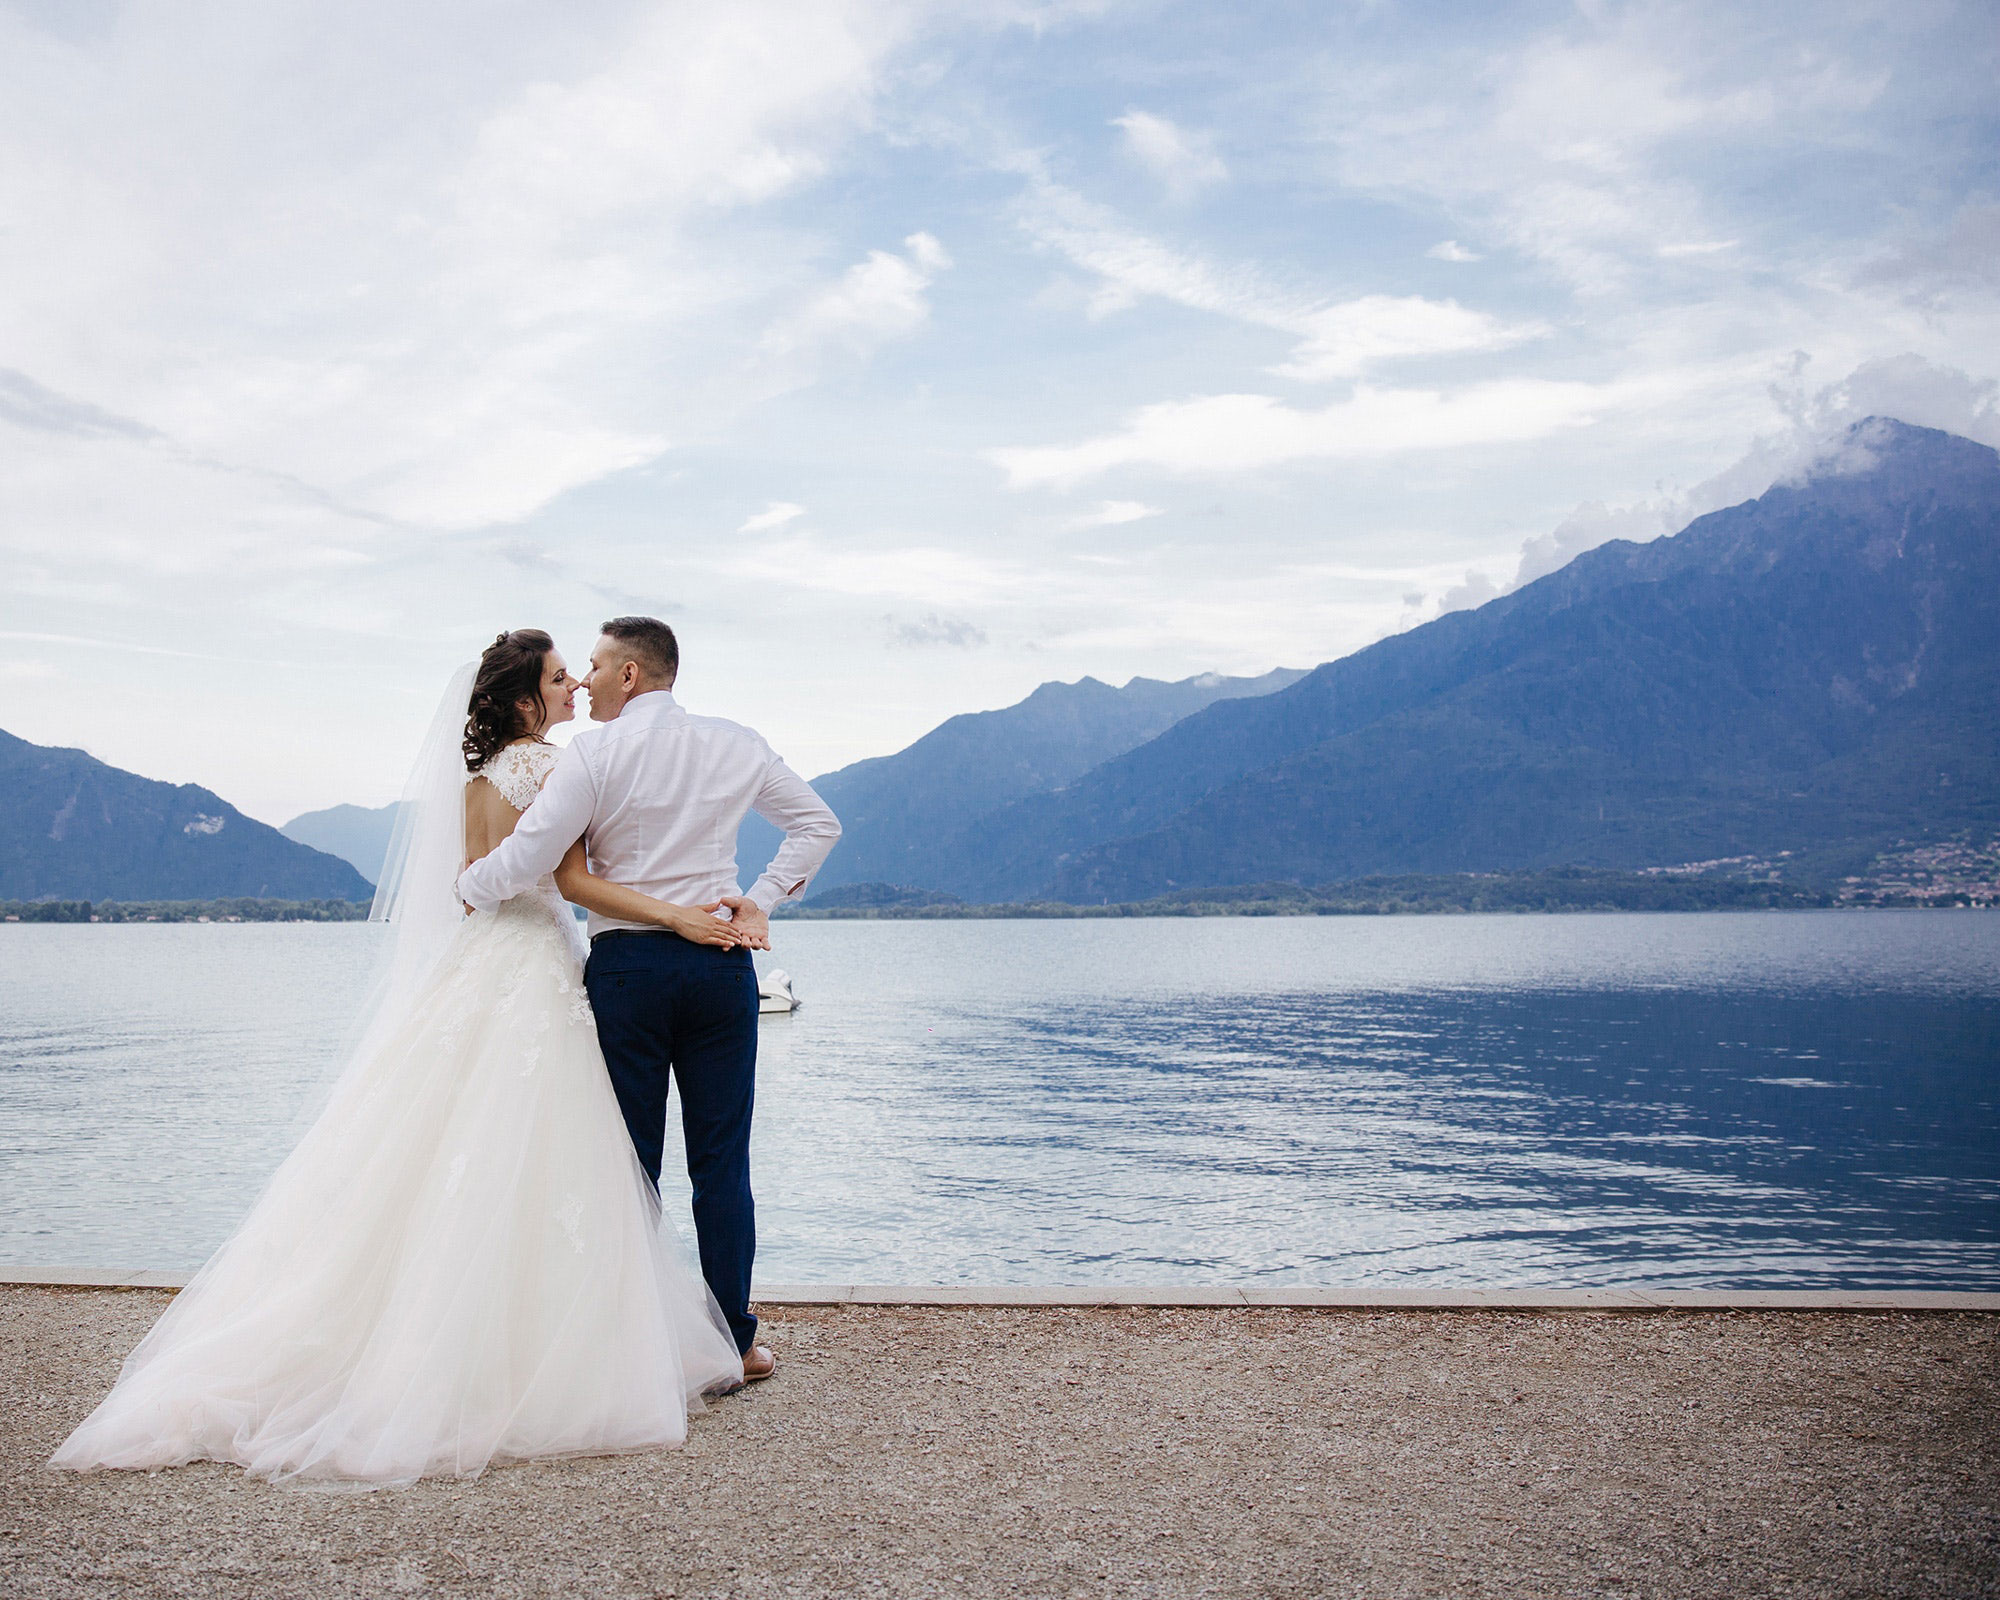 Bride and groom embracing by a lake